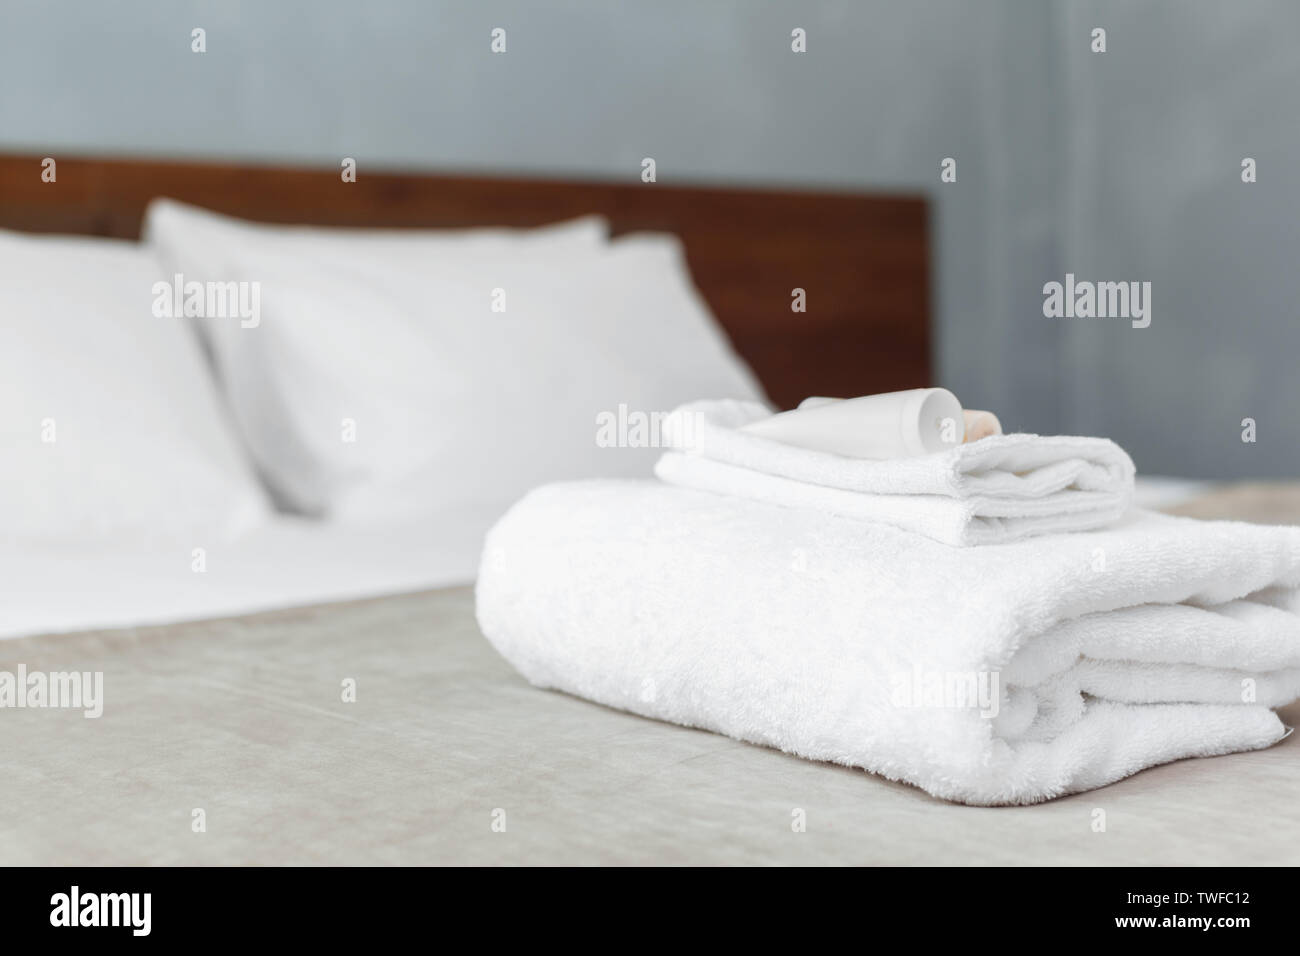 White towel on bed in guest room for hotel customer - Stock Image